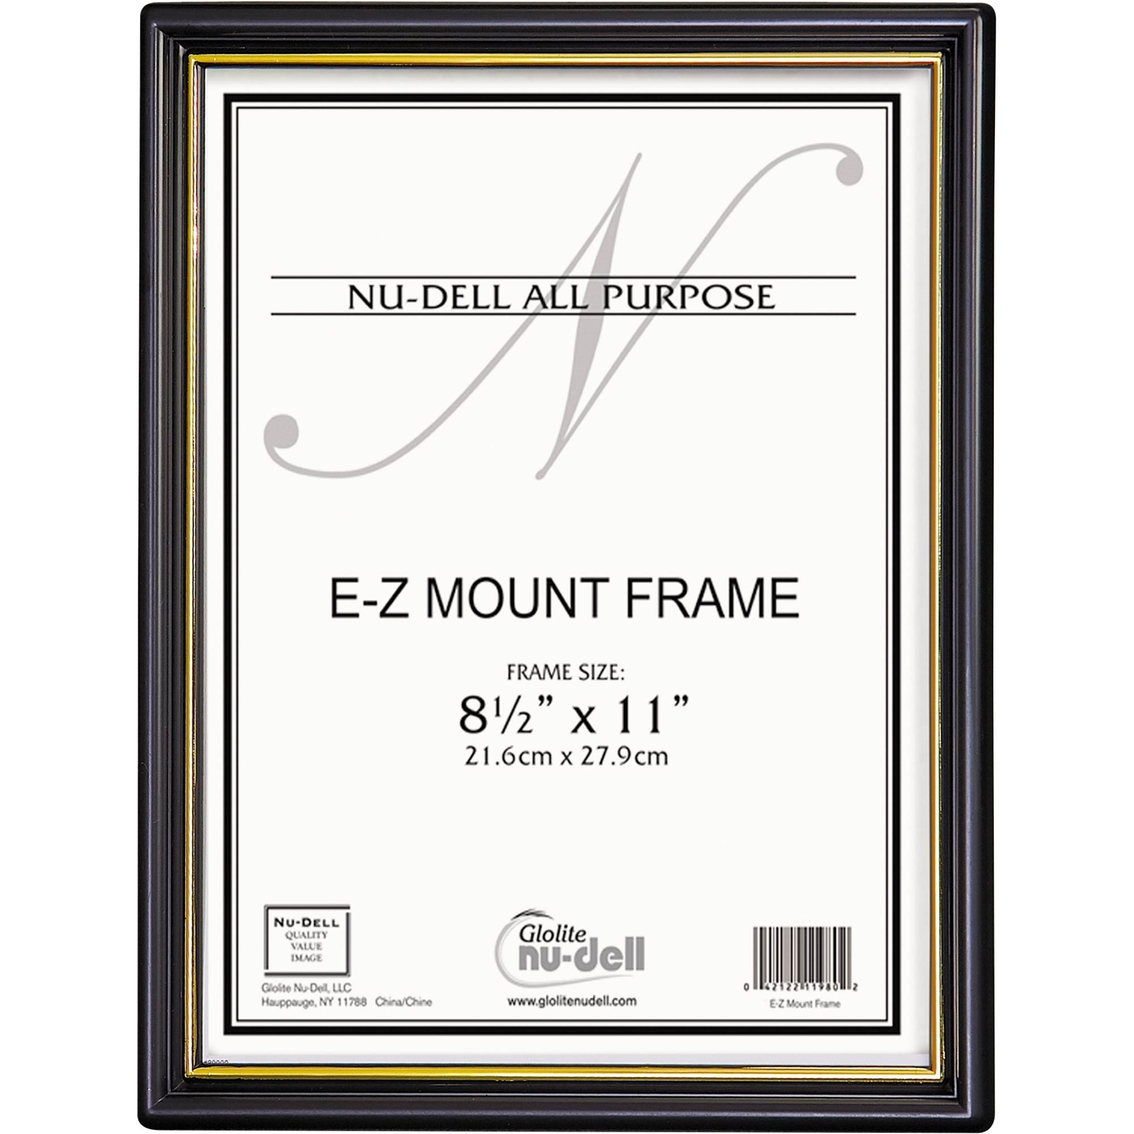 Nudell Ez Mount Document Frame With Trim Accent, 8 1/2 X 11 In ...